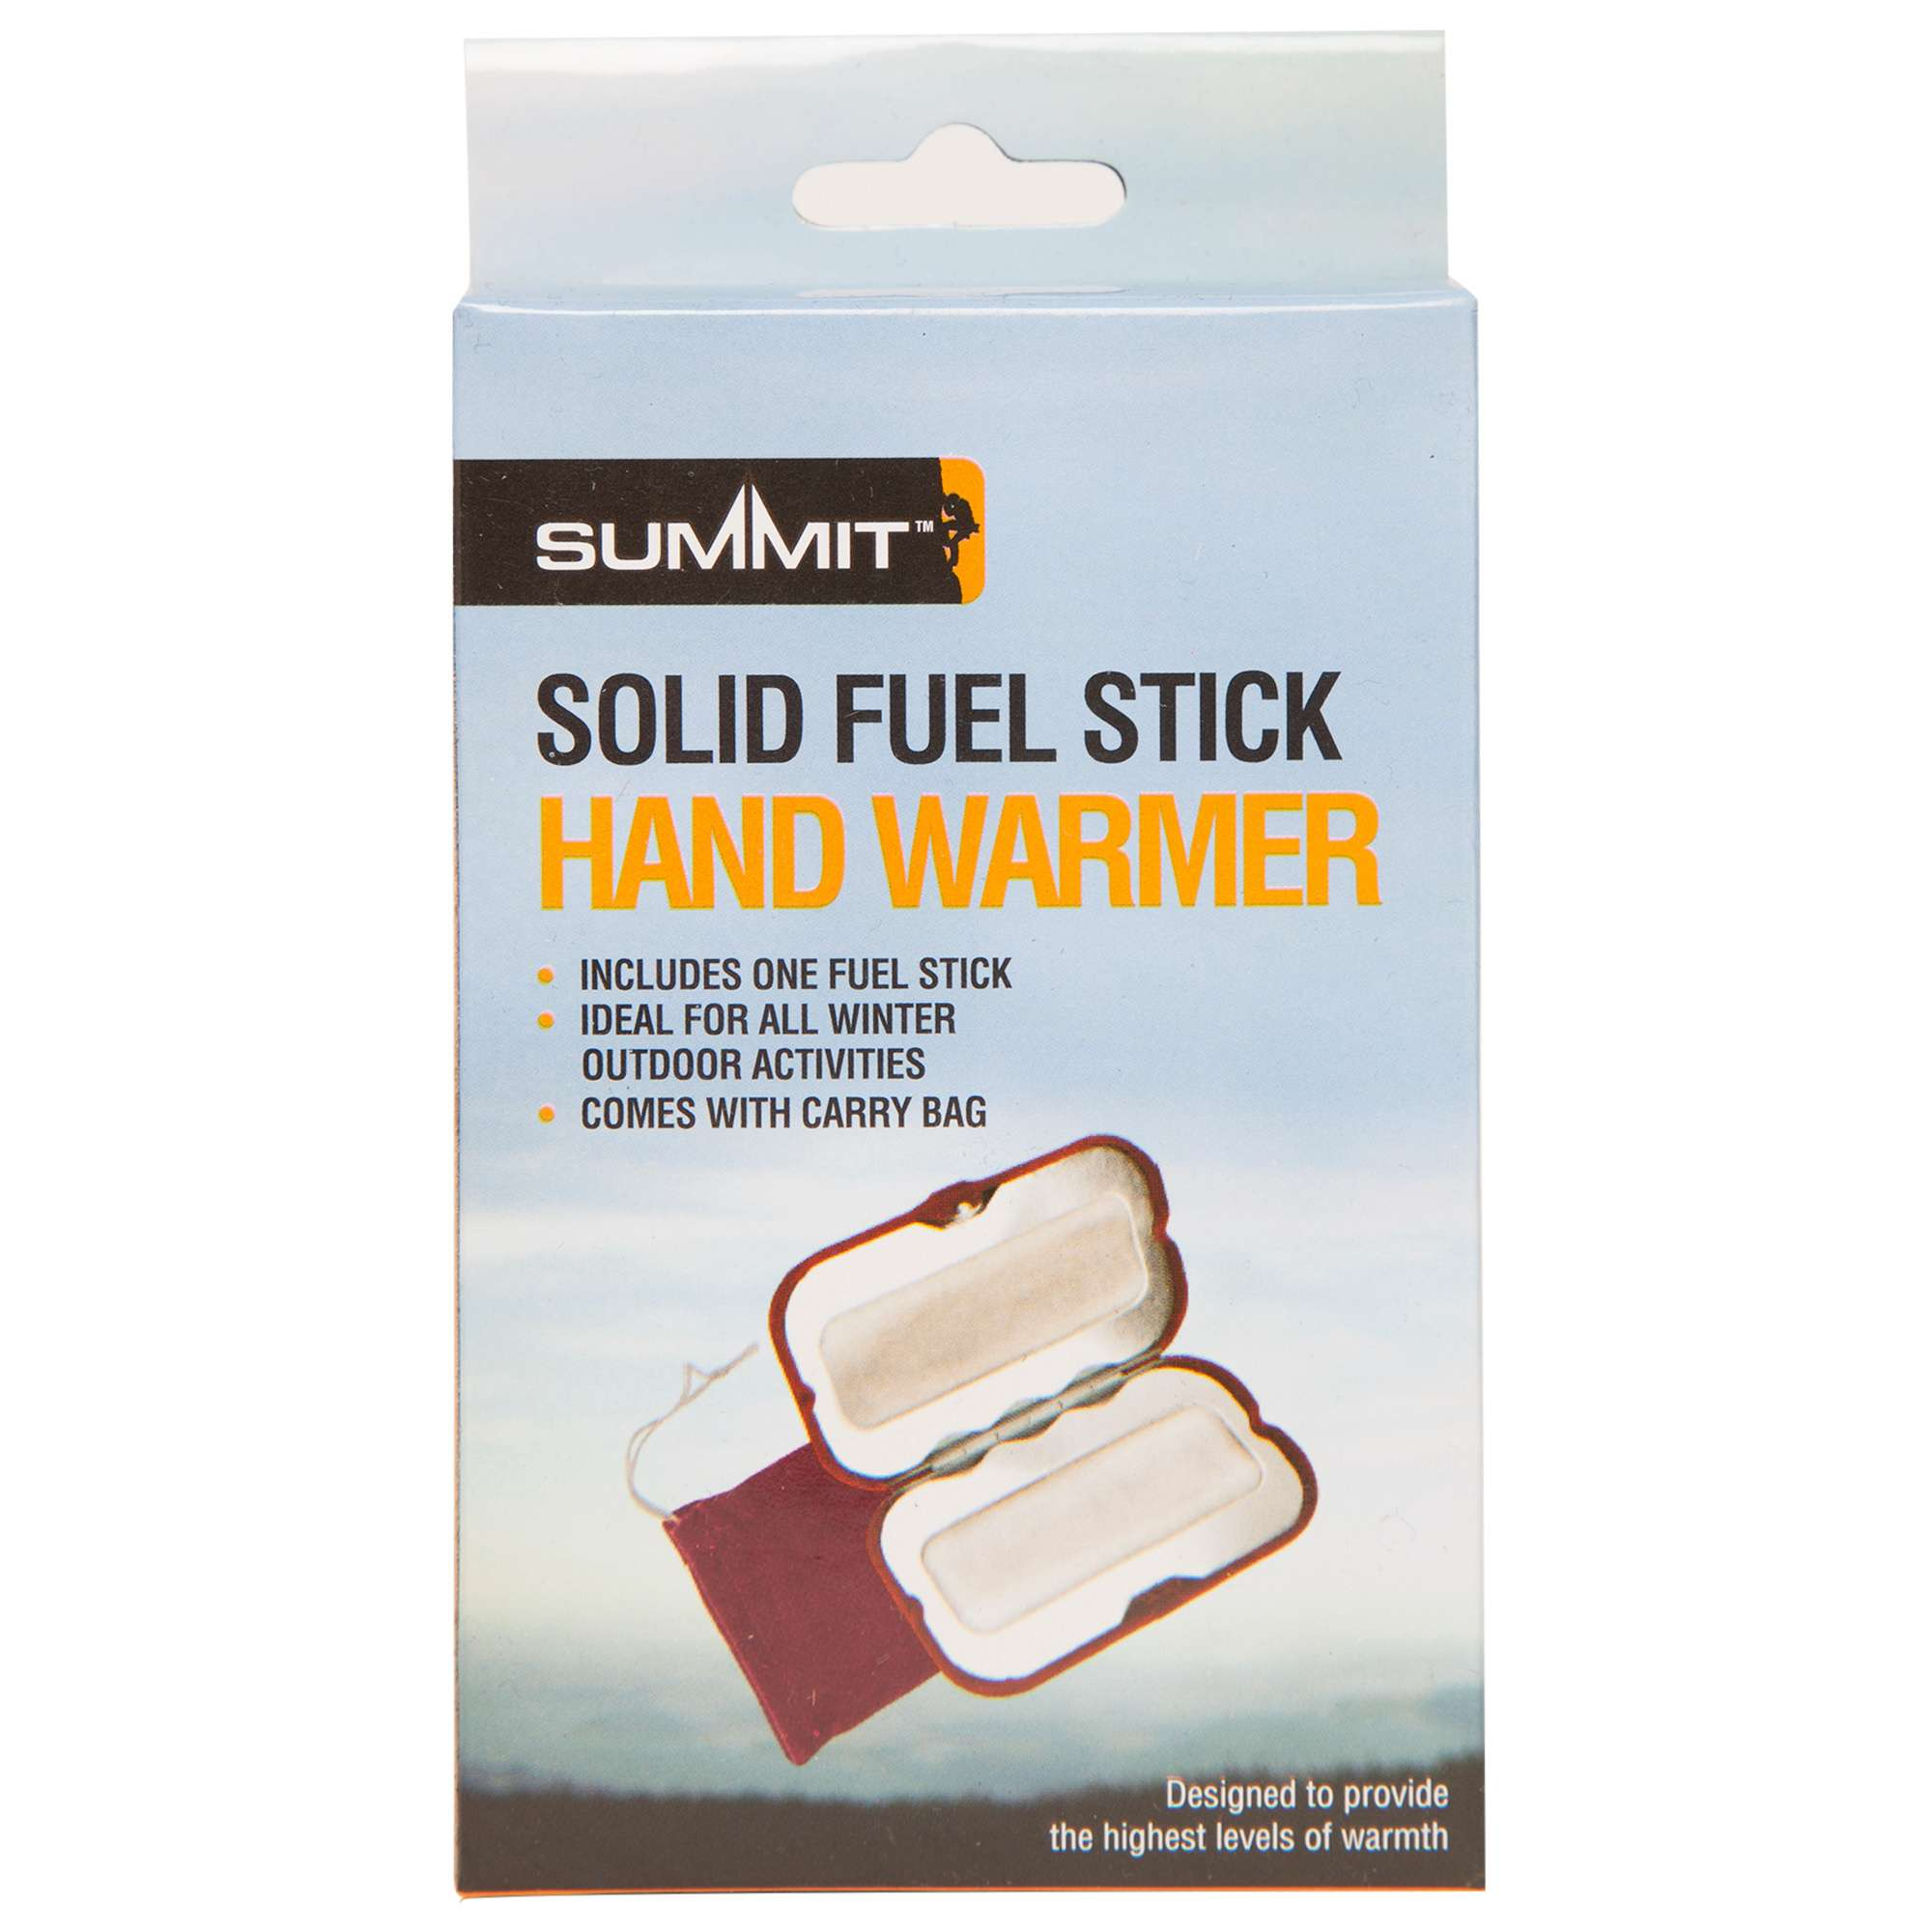 SUMMIT Solid Fuel Stick Hand Warmer